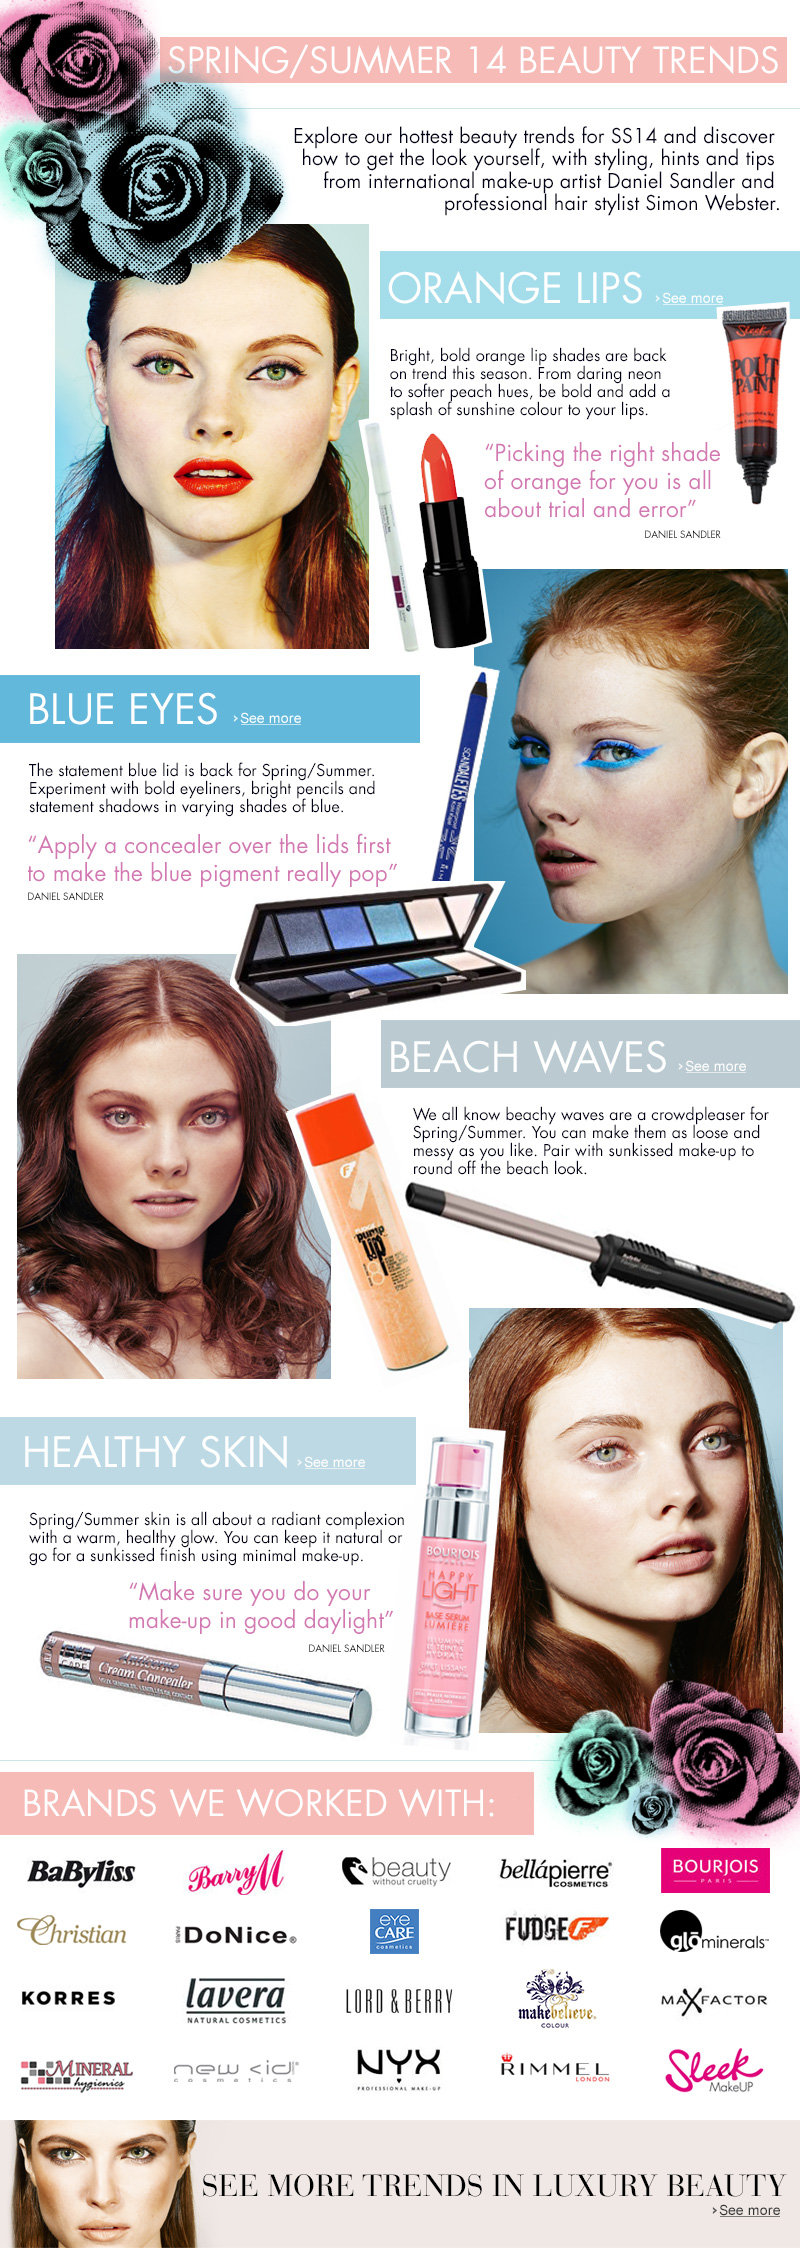 Spring Summer 2014 Beauty Trends